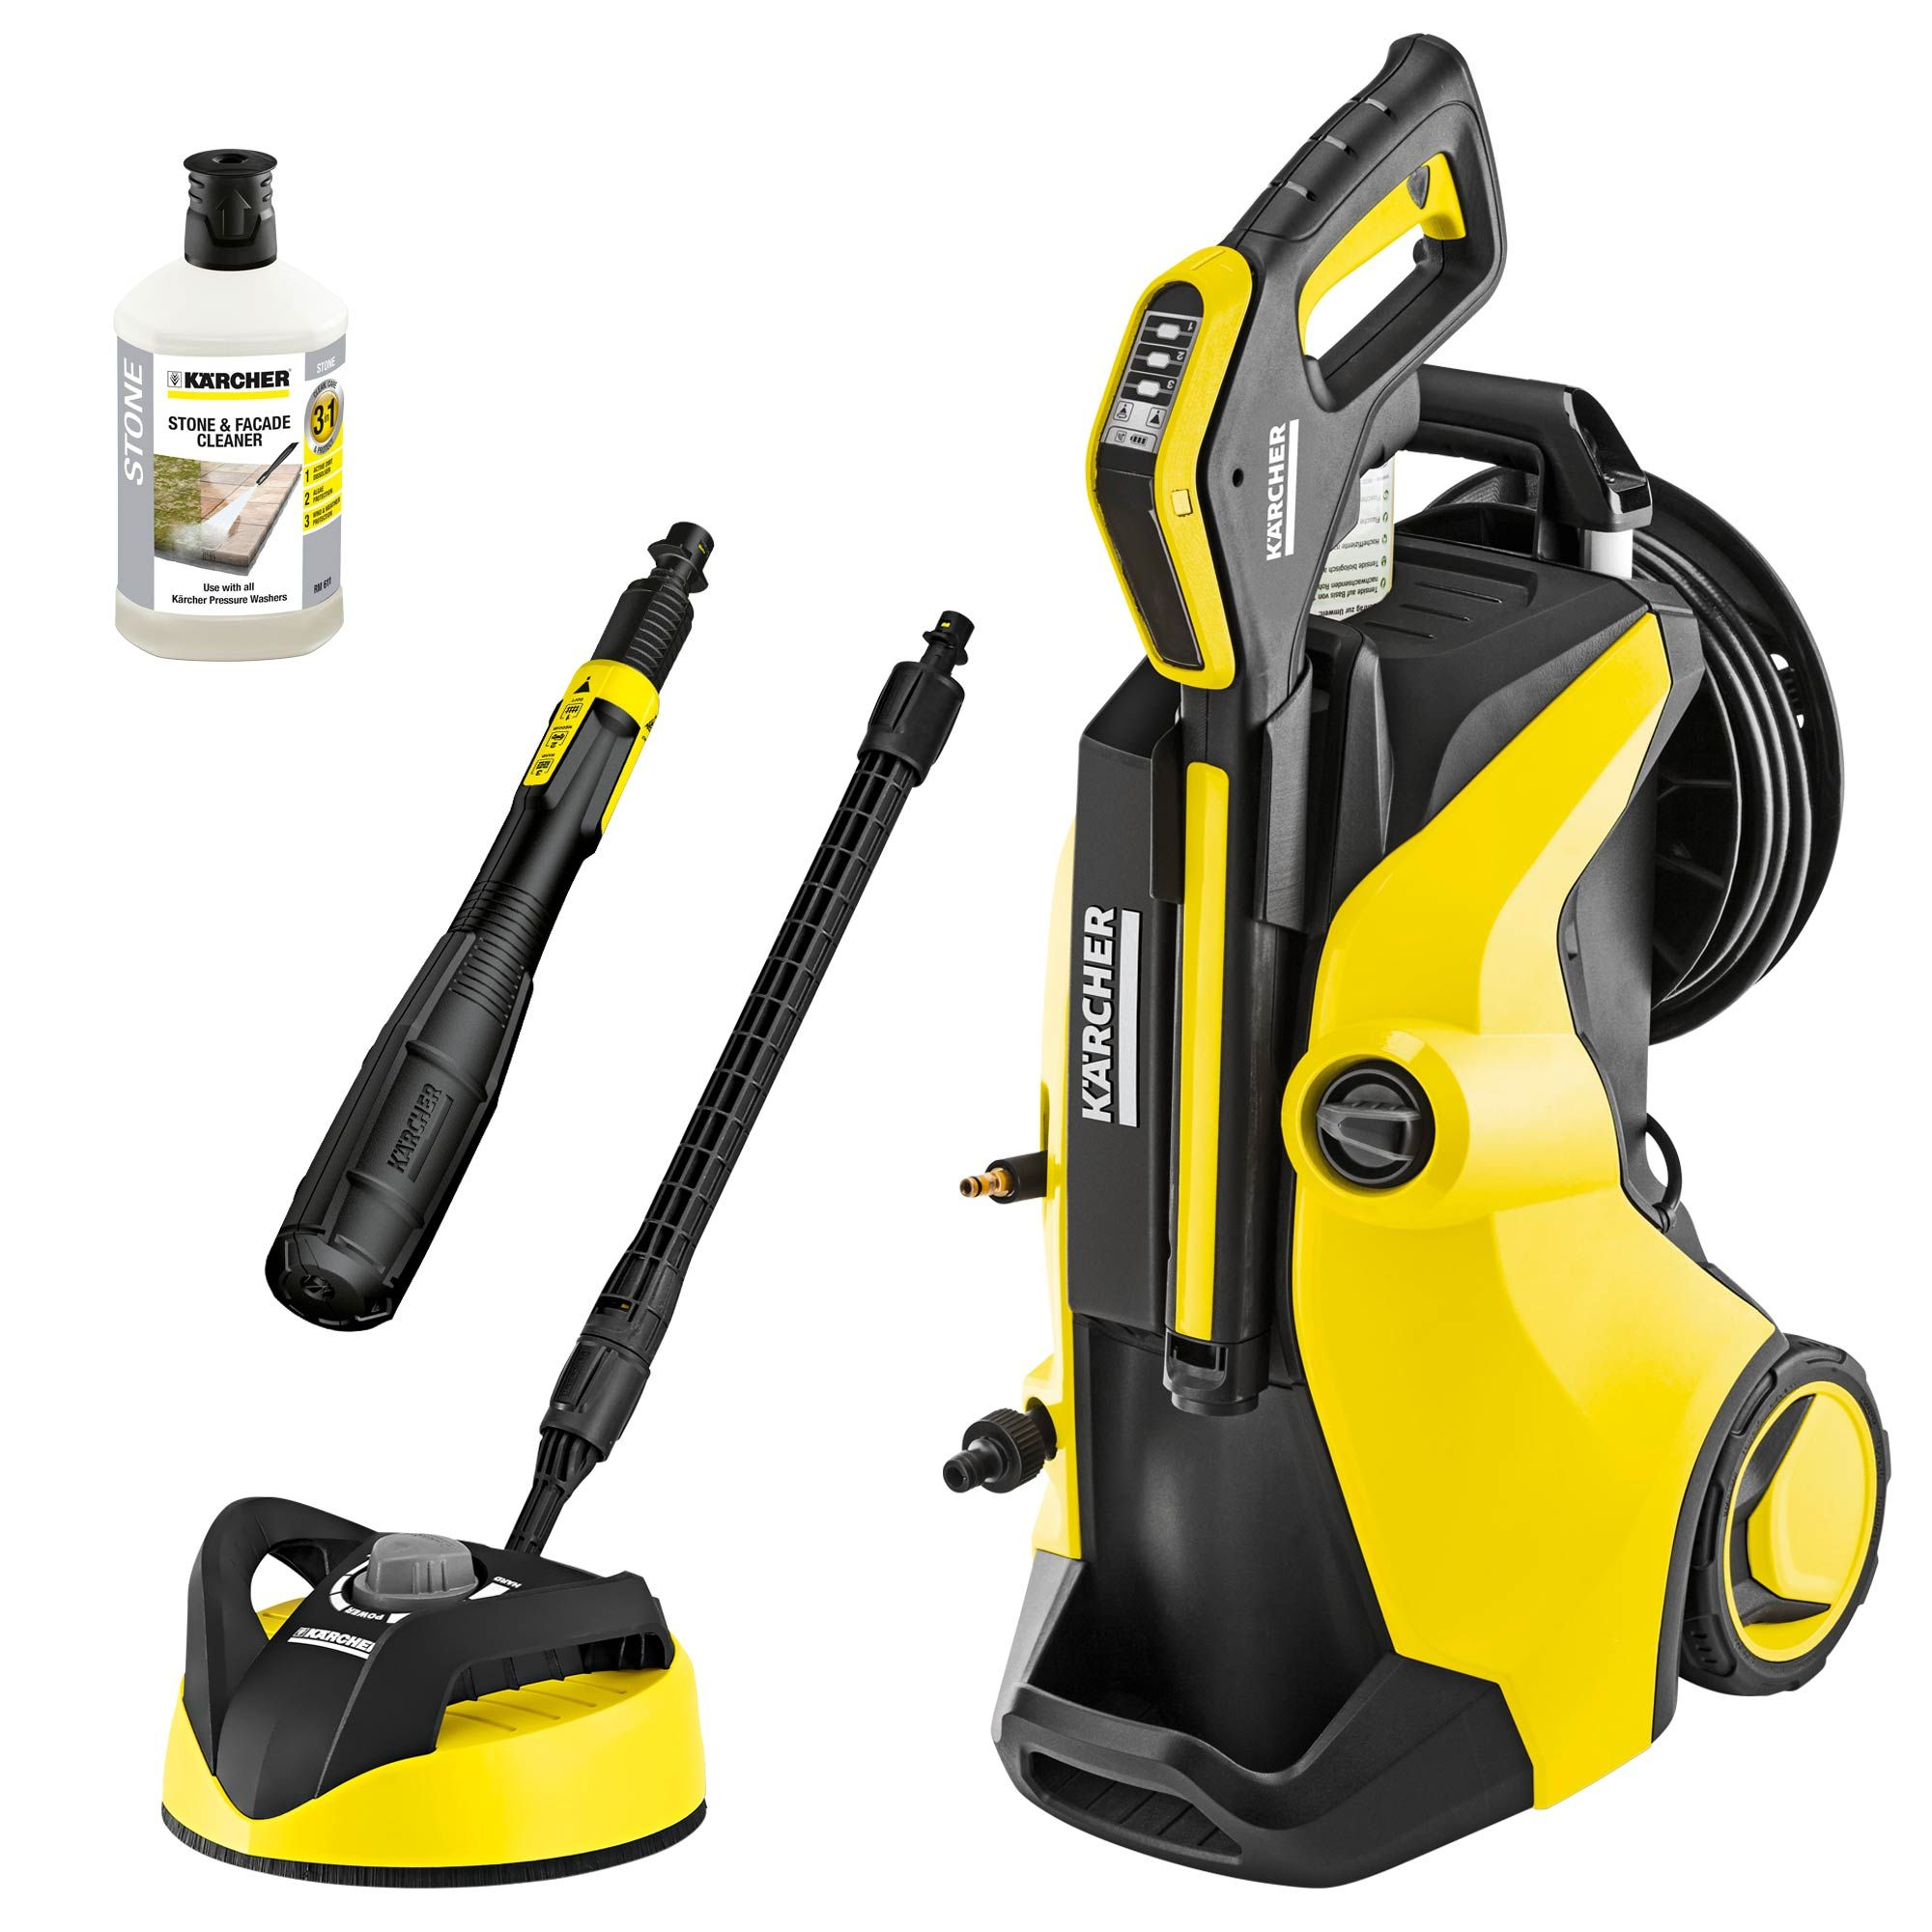 The Karcher K 5 Premium Full Control Plus Home Includes Our Latest Cleaning Innovation A Single Multi Jet Lance That Enables Pressure Washer Pressure Dj Gear